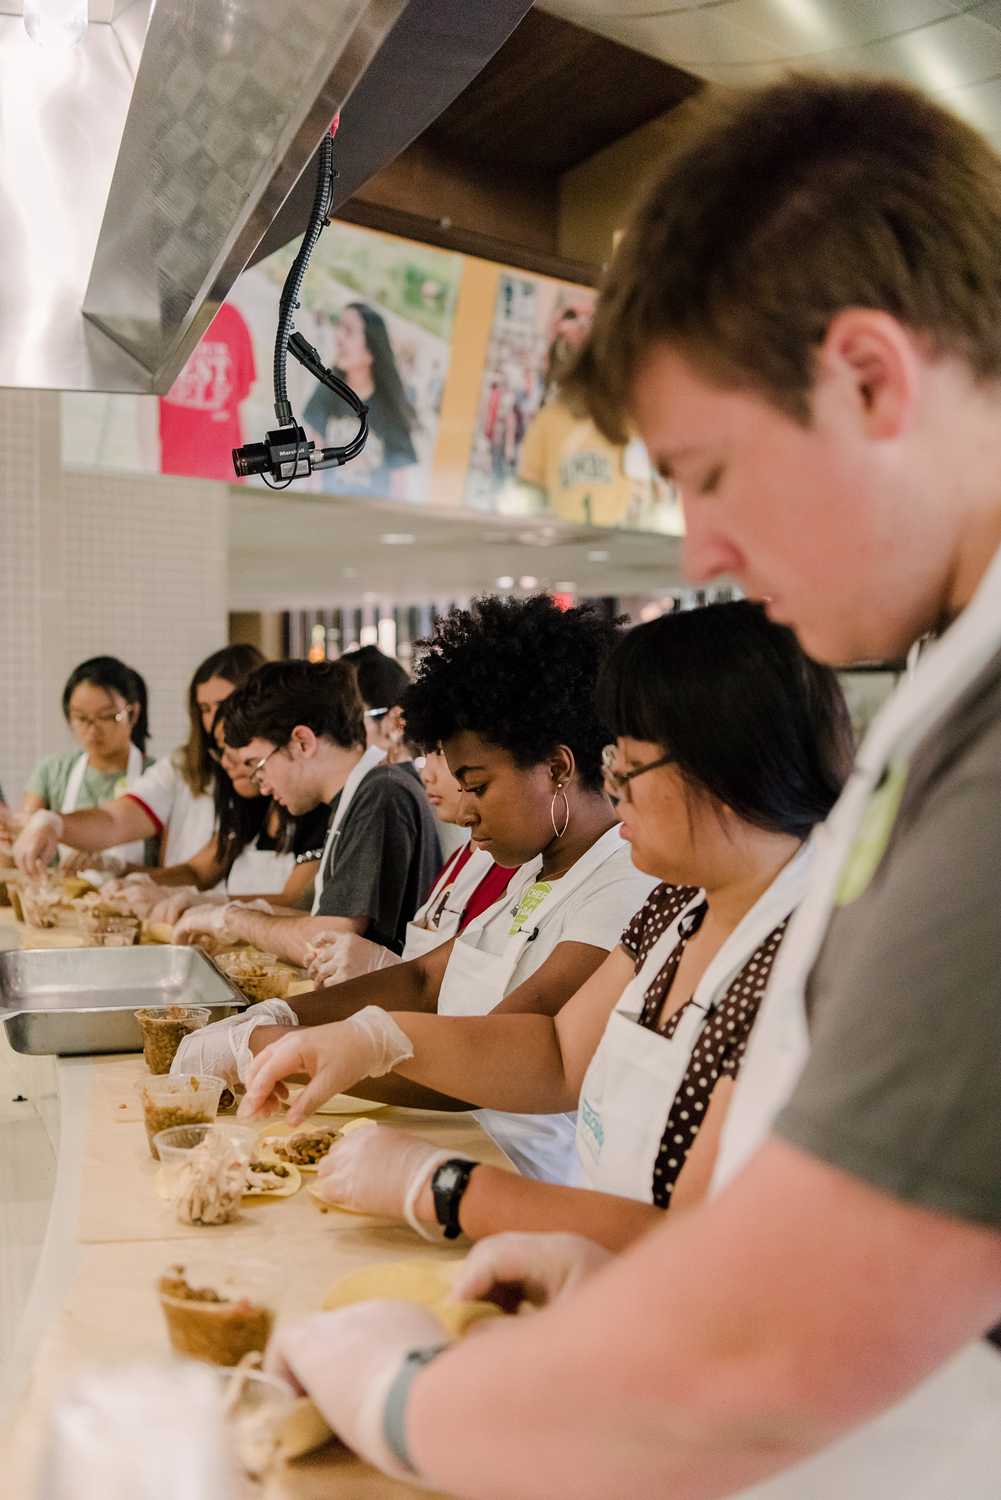 students in aprons in cooking line